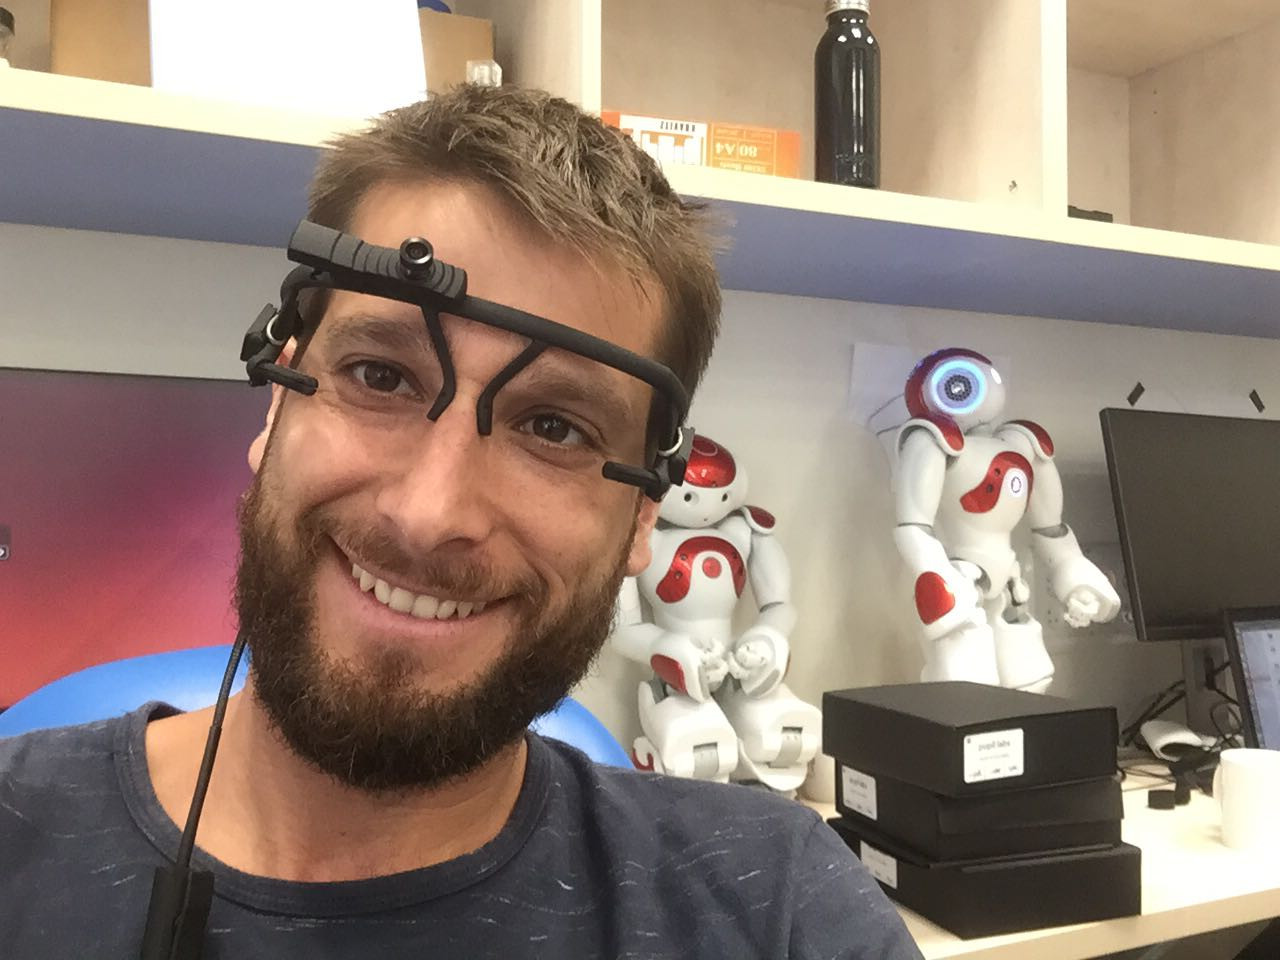 new eye tracker on our lab